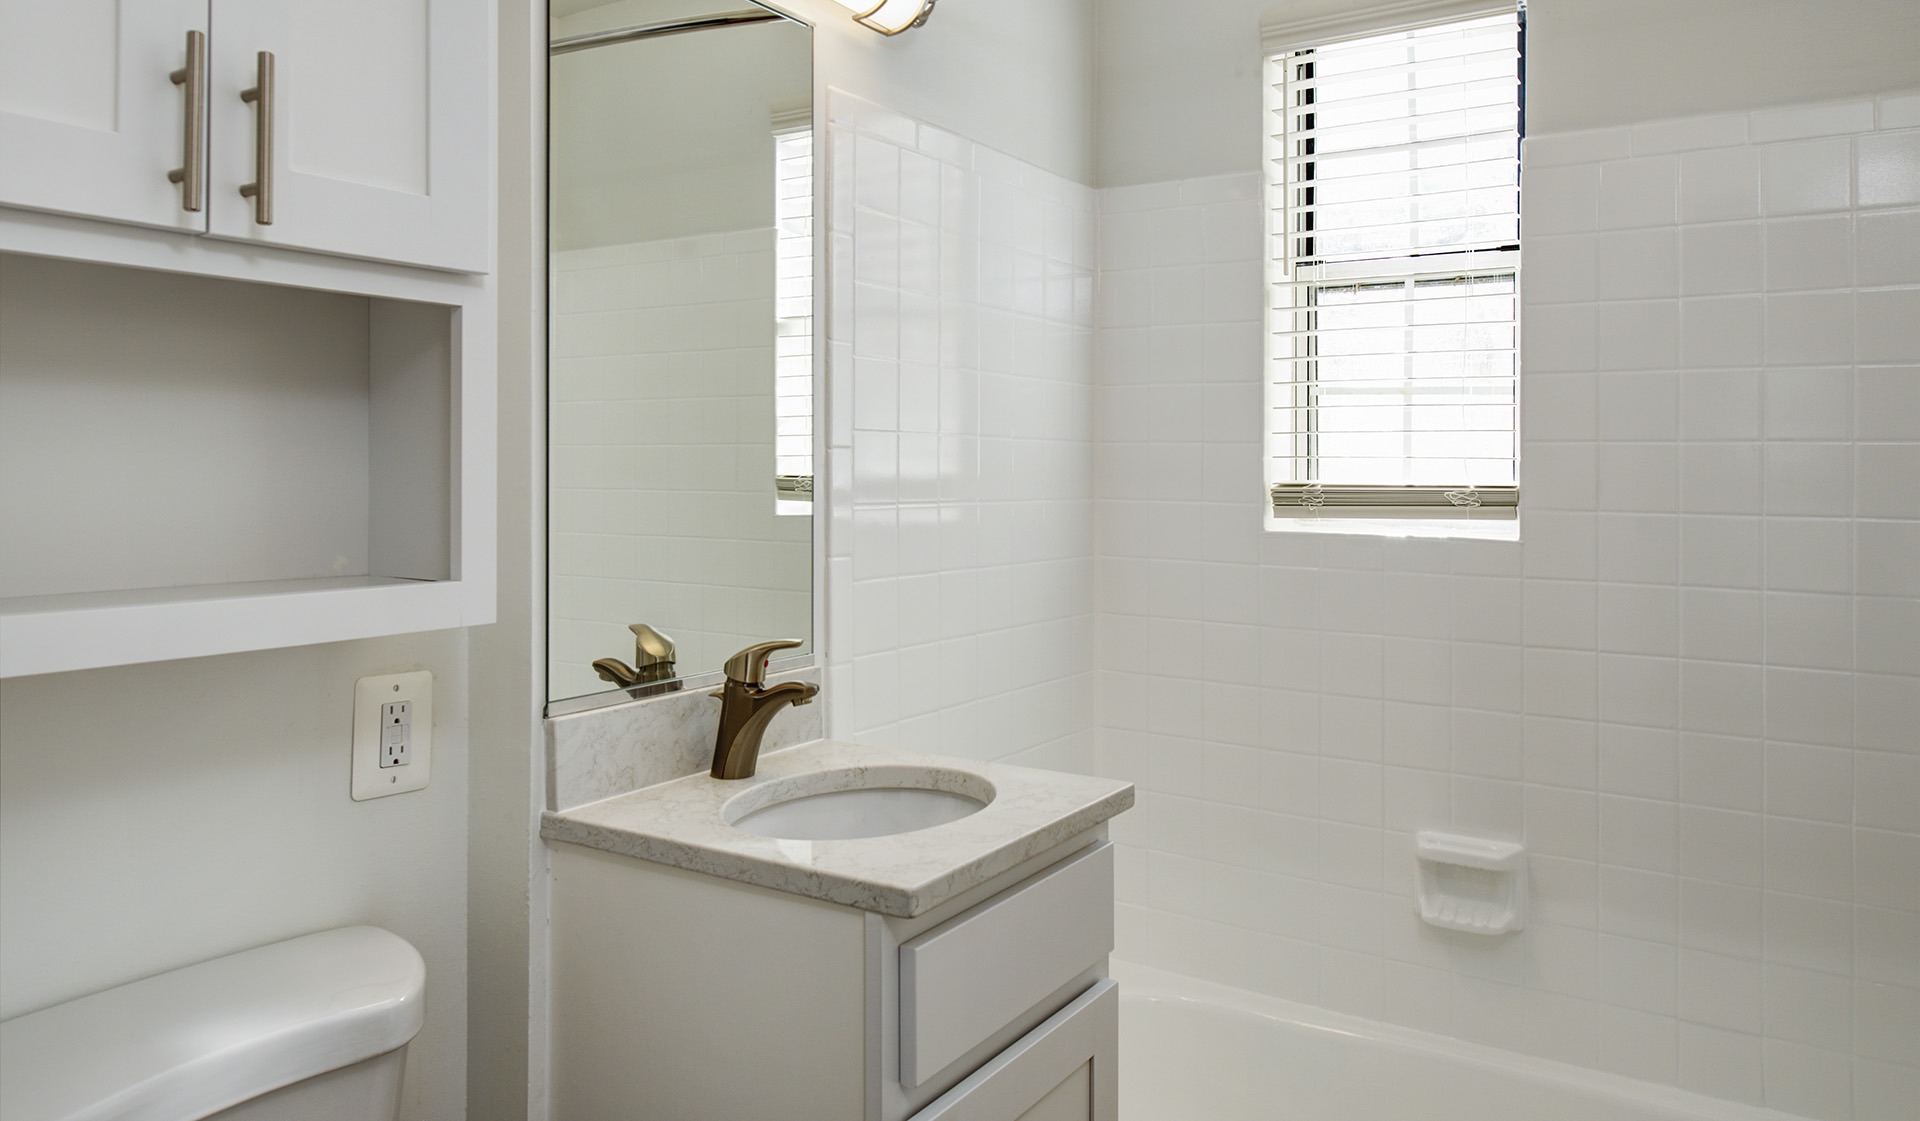 Foxchase Aparments | Alexandria, VA | Bathroom